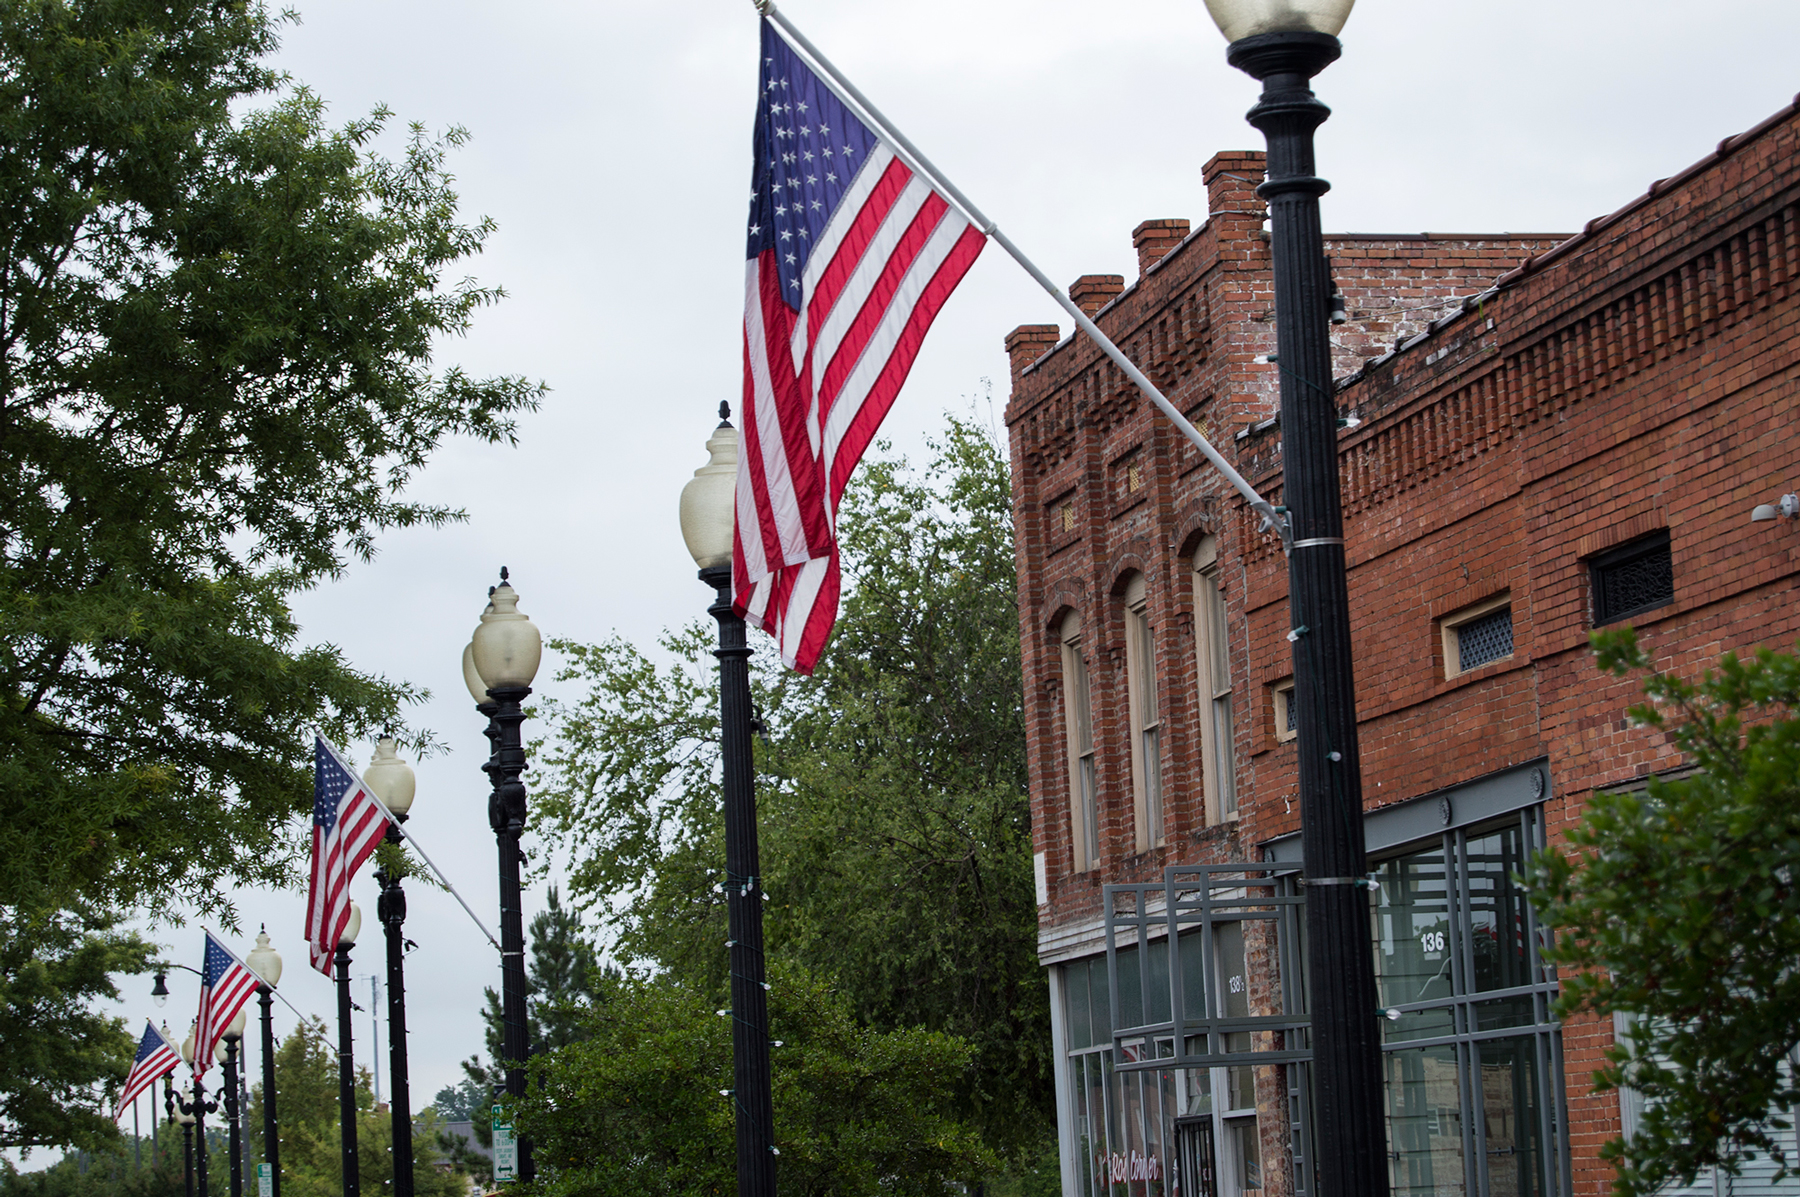 A row of flags greets pedestrians on Person Street in downtown Fayetteville, home to a considerable population of active duty military personnel and veterans. (Michael Olinger/News21)